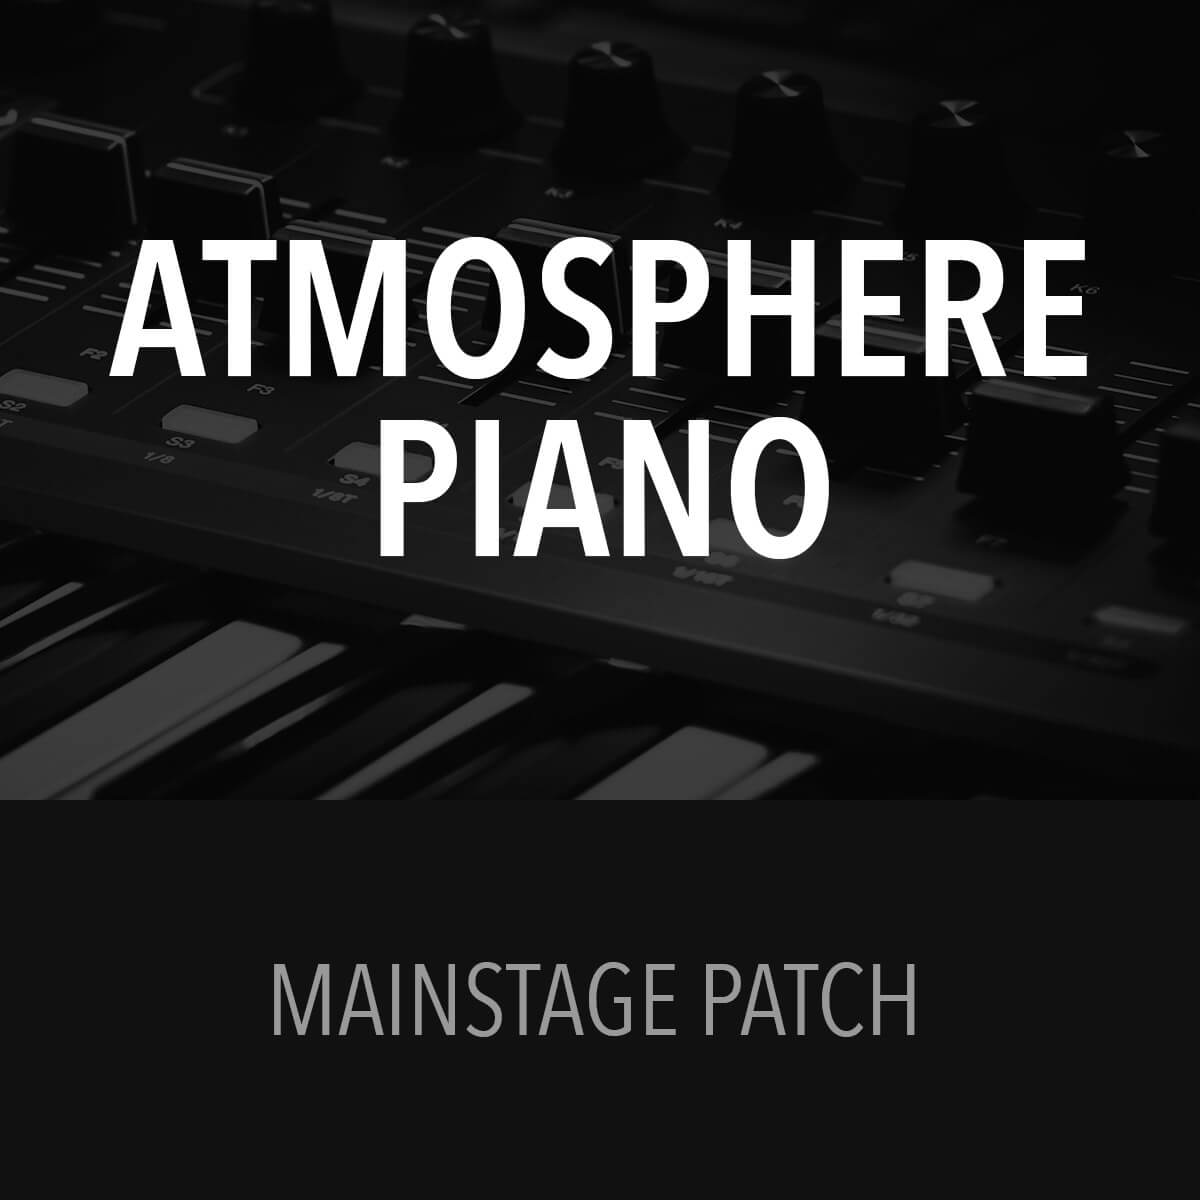 Atmosphere piano collaborate worship mainstage patch atmostphere piano baditri Images